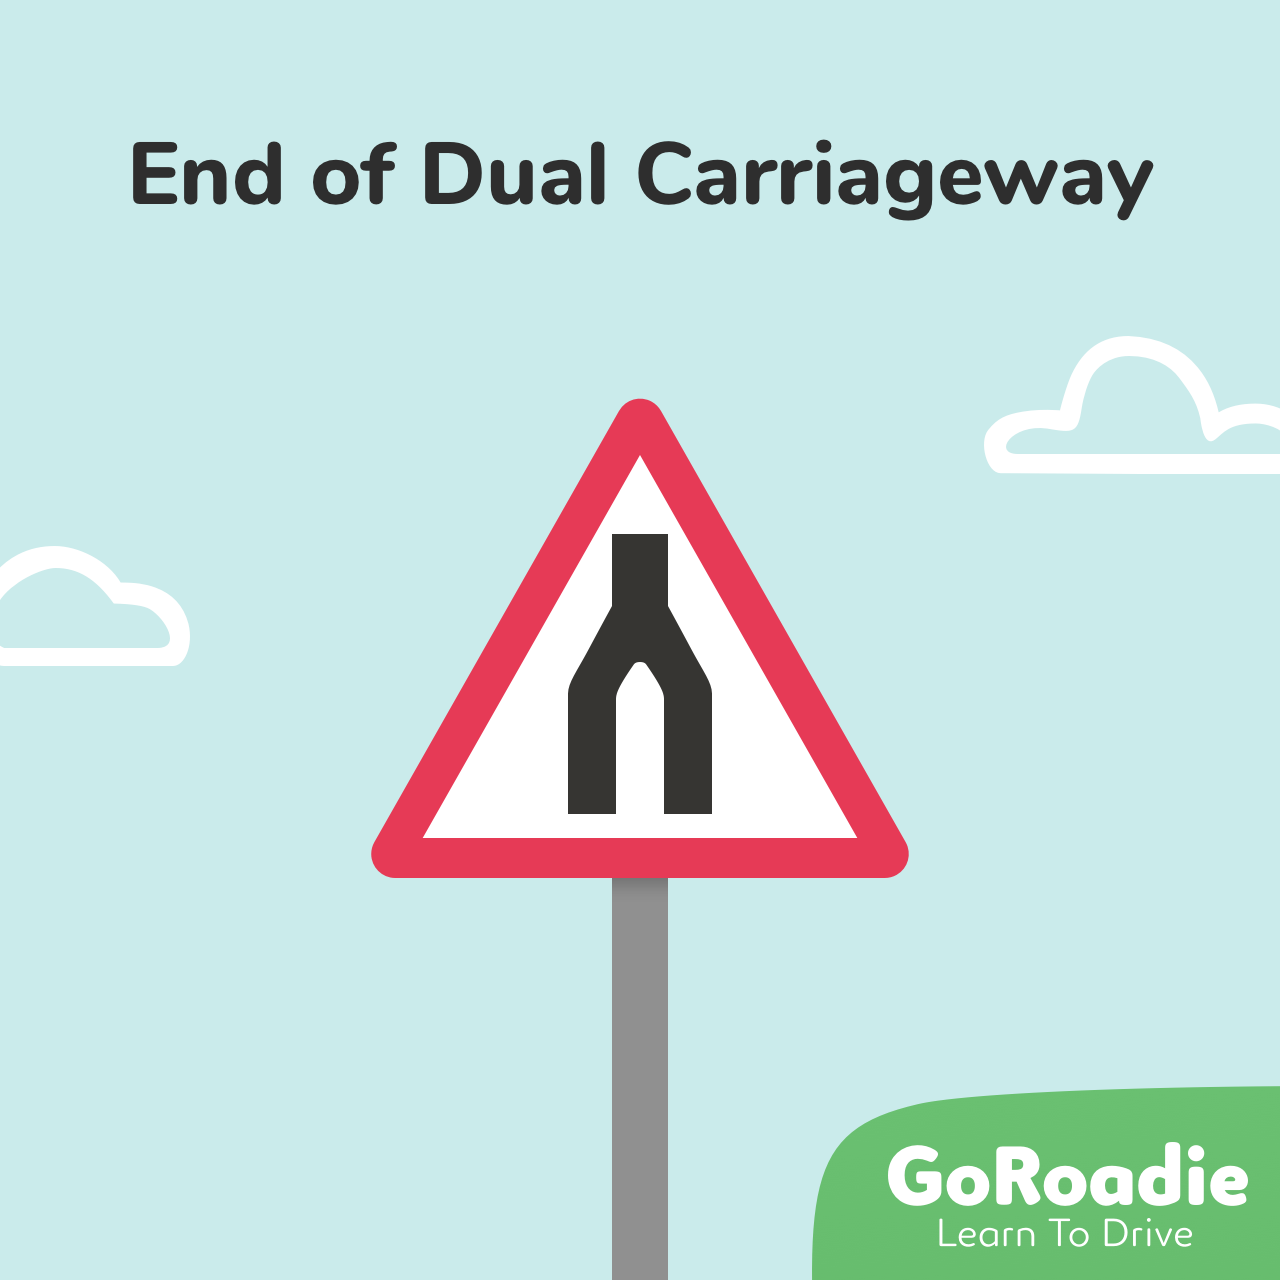 End of Dual Carriageway traffic sign illustration